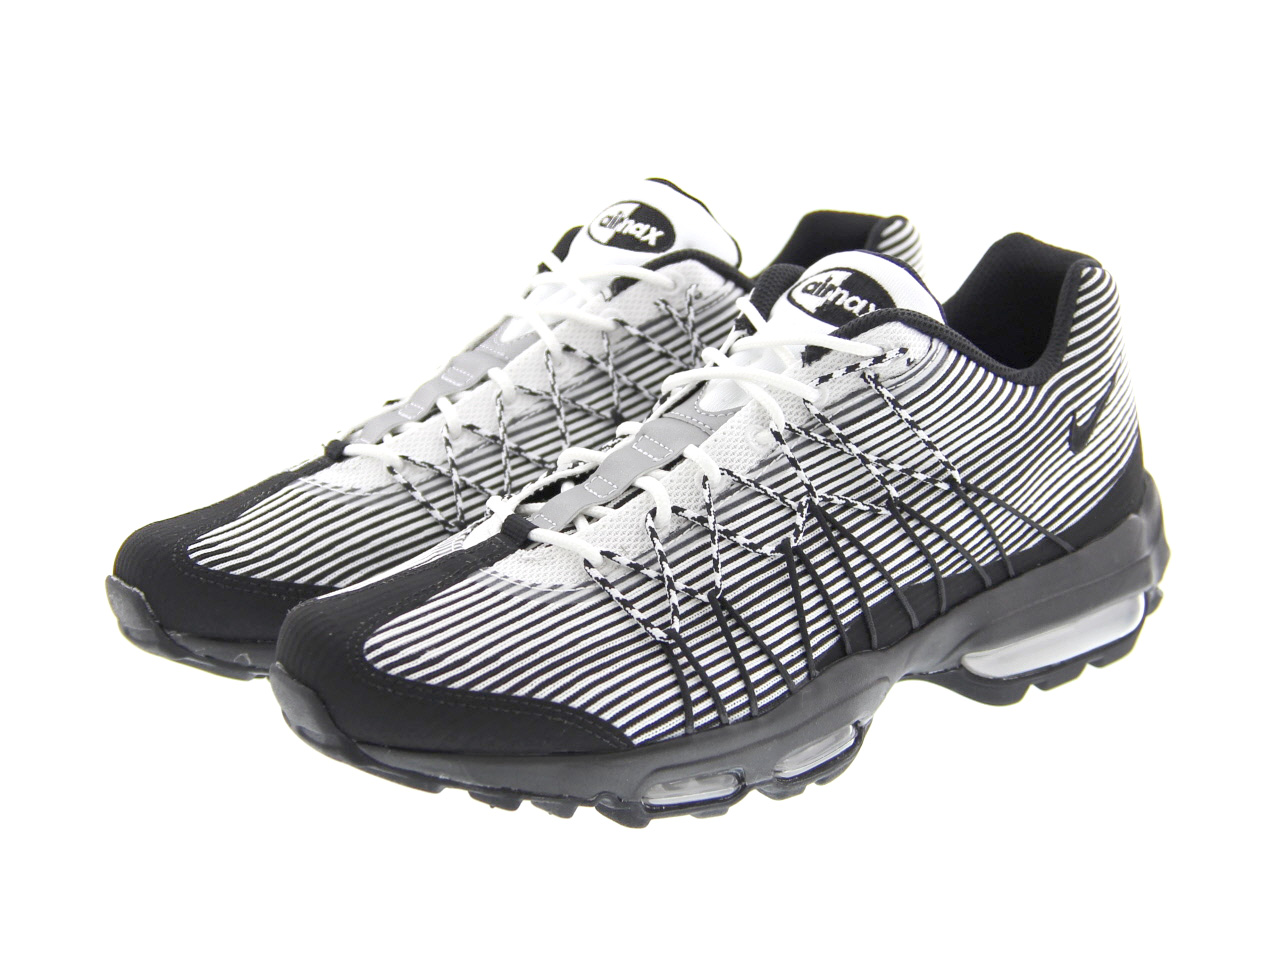 NIKE AIR MAX 95 ULTRA JCRD (749771-101) WHITE/BLACK-METALLiC SILVER